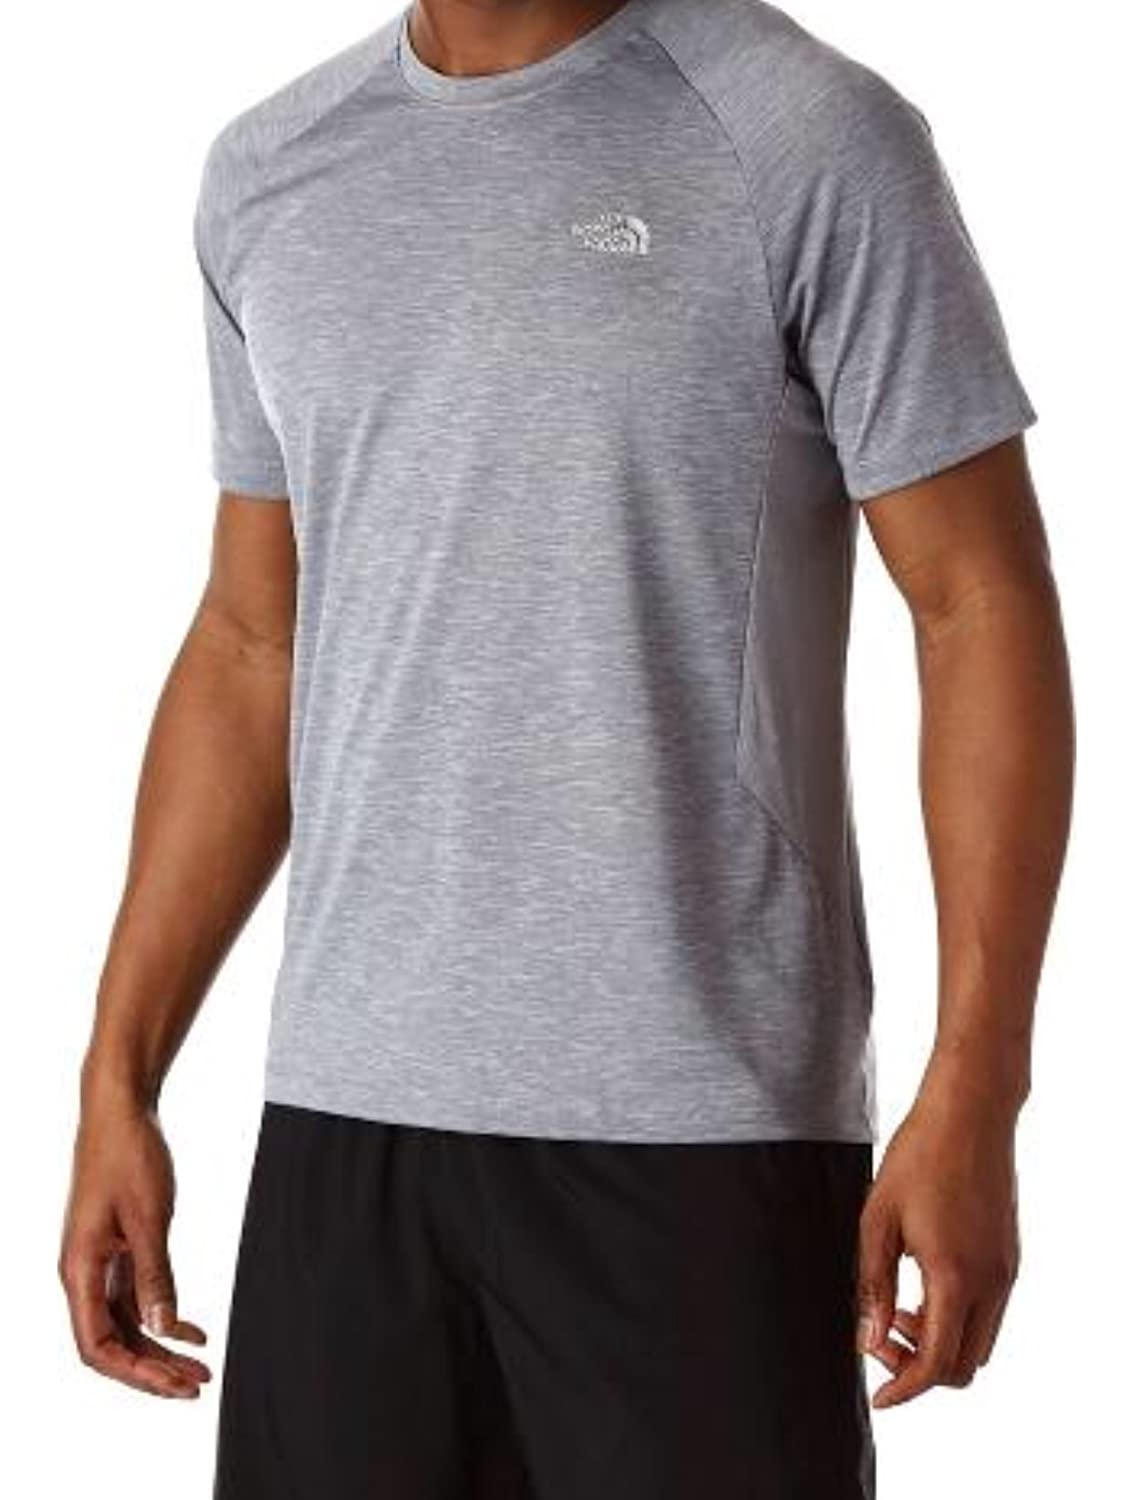 ad98a2566 The North Face Men Ambition FlashDry Shirt in Medium Grey Heather in ...